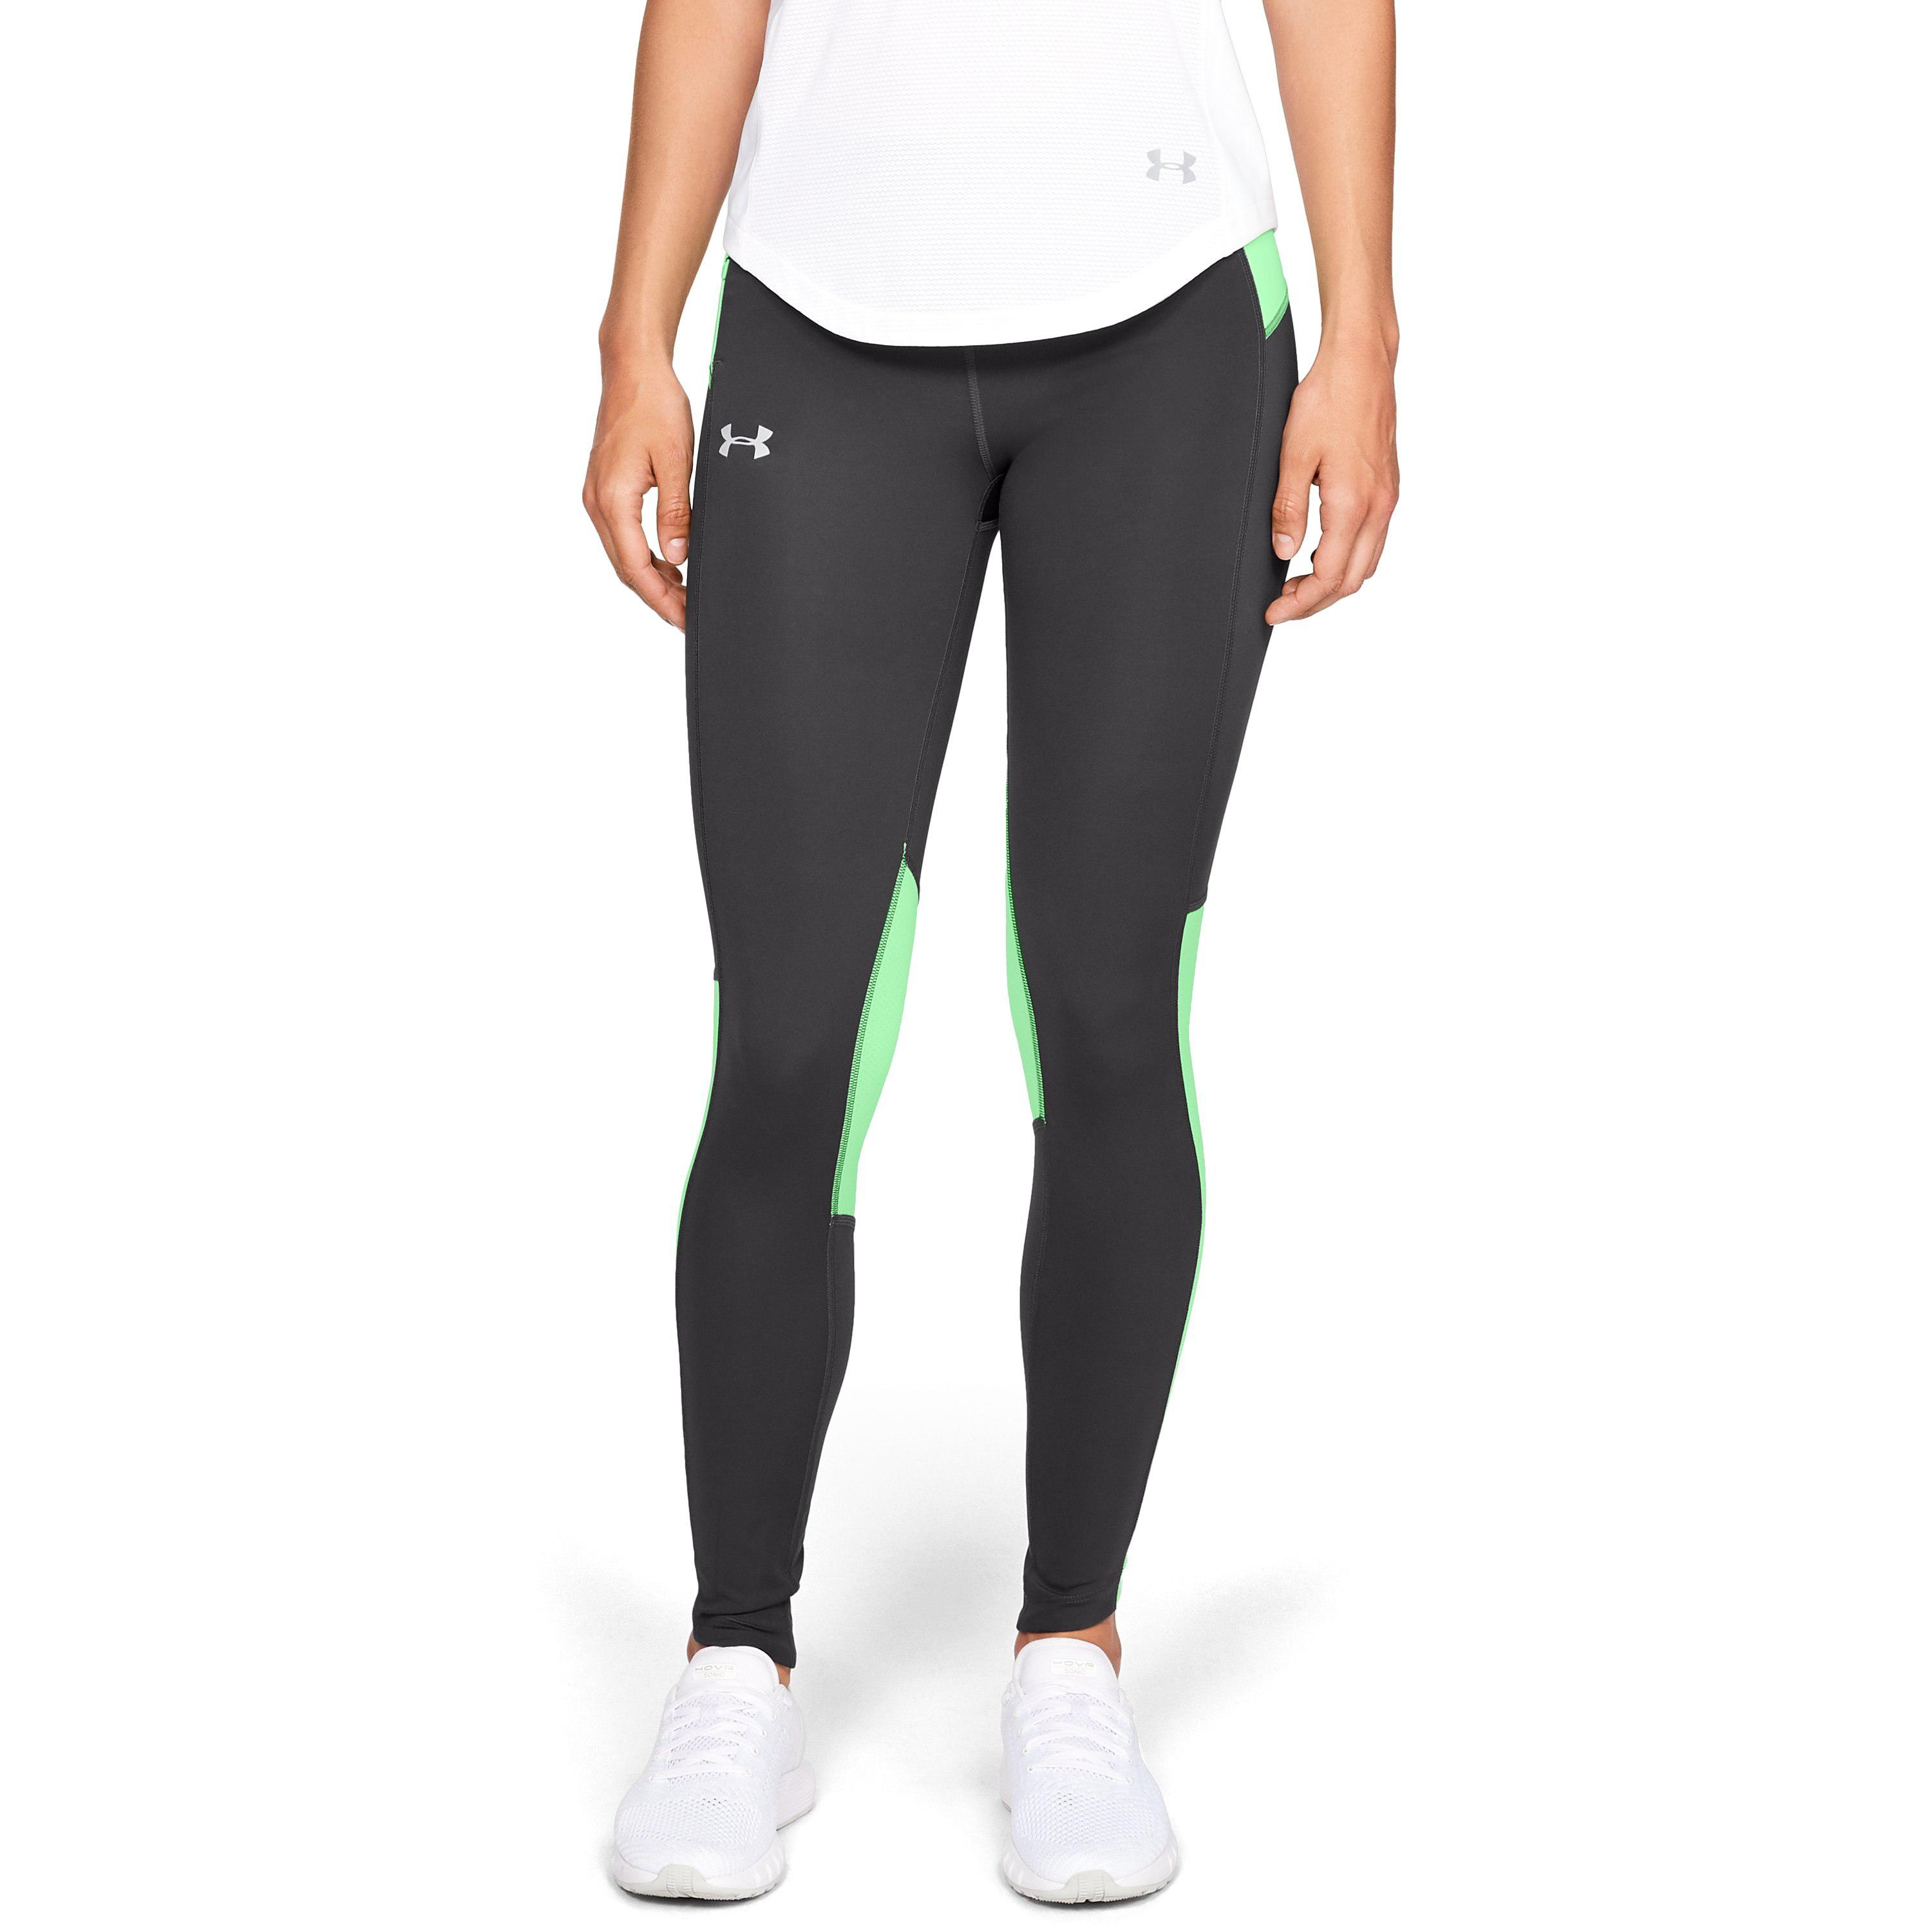 3fad87a87f606d Under Armour Women's Ua Outrun The Storm Tights in Gray - Lyst